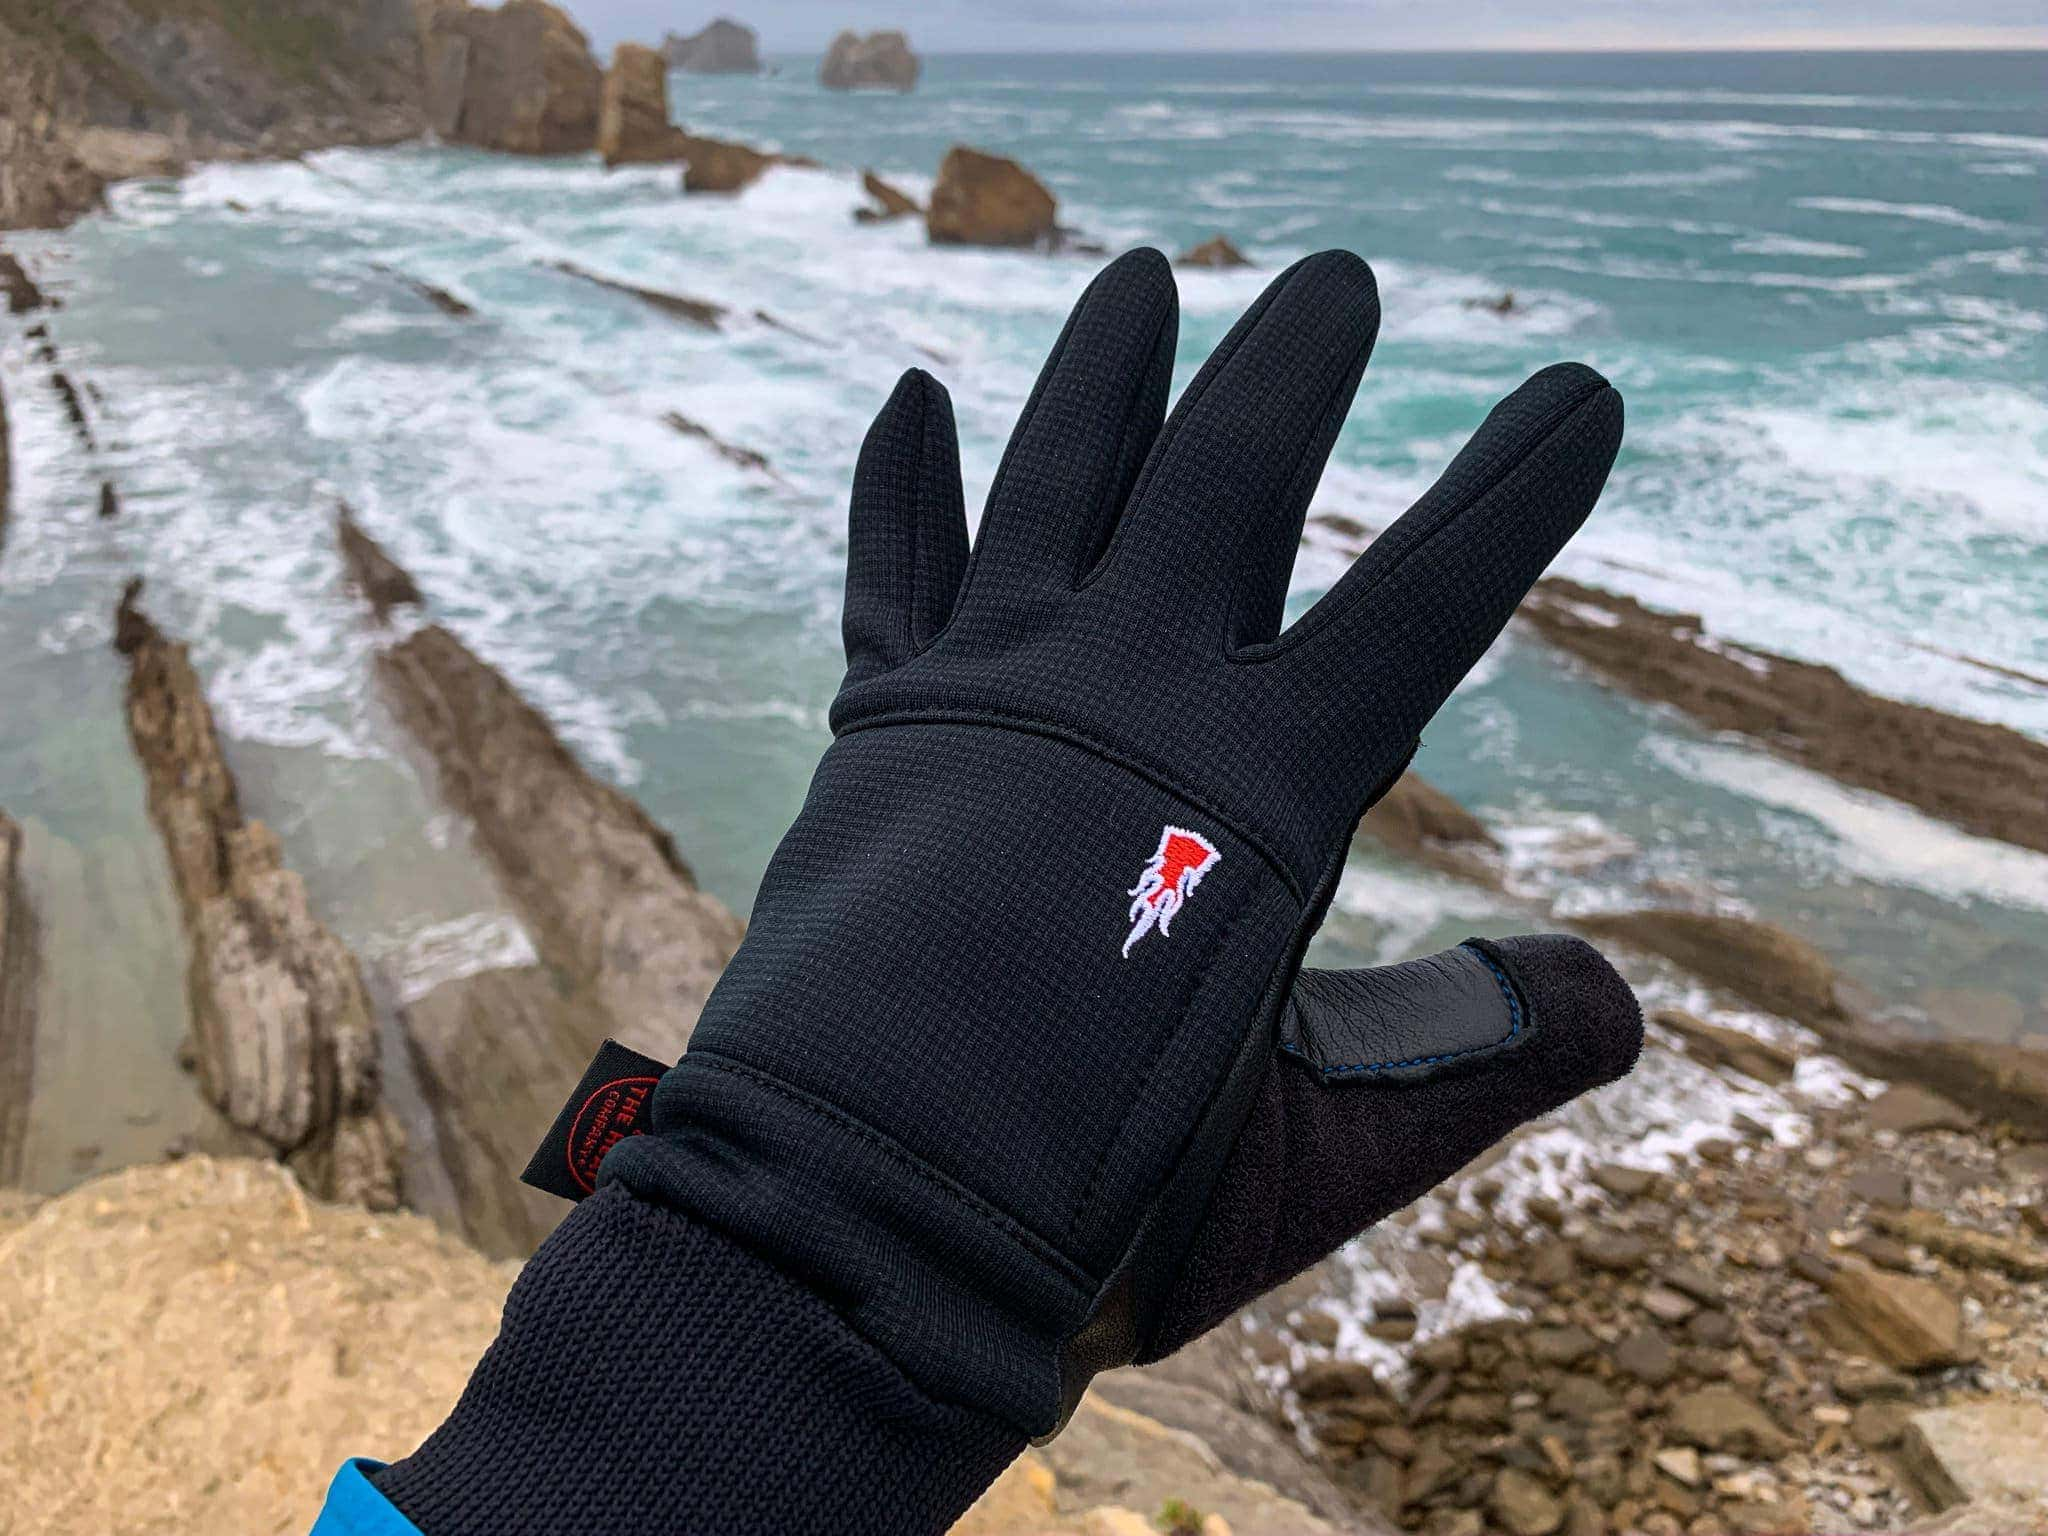 Francesco Gola Review The Heat Company Durable Liner Pro New Gloves 4